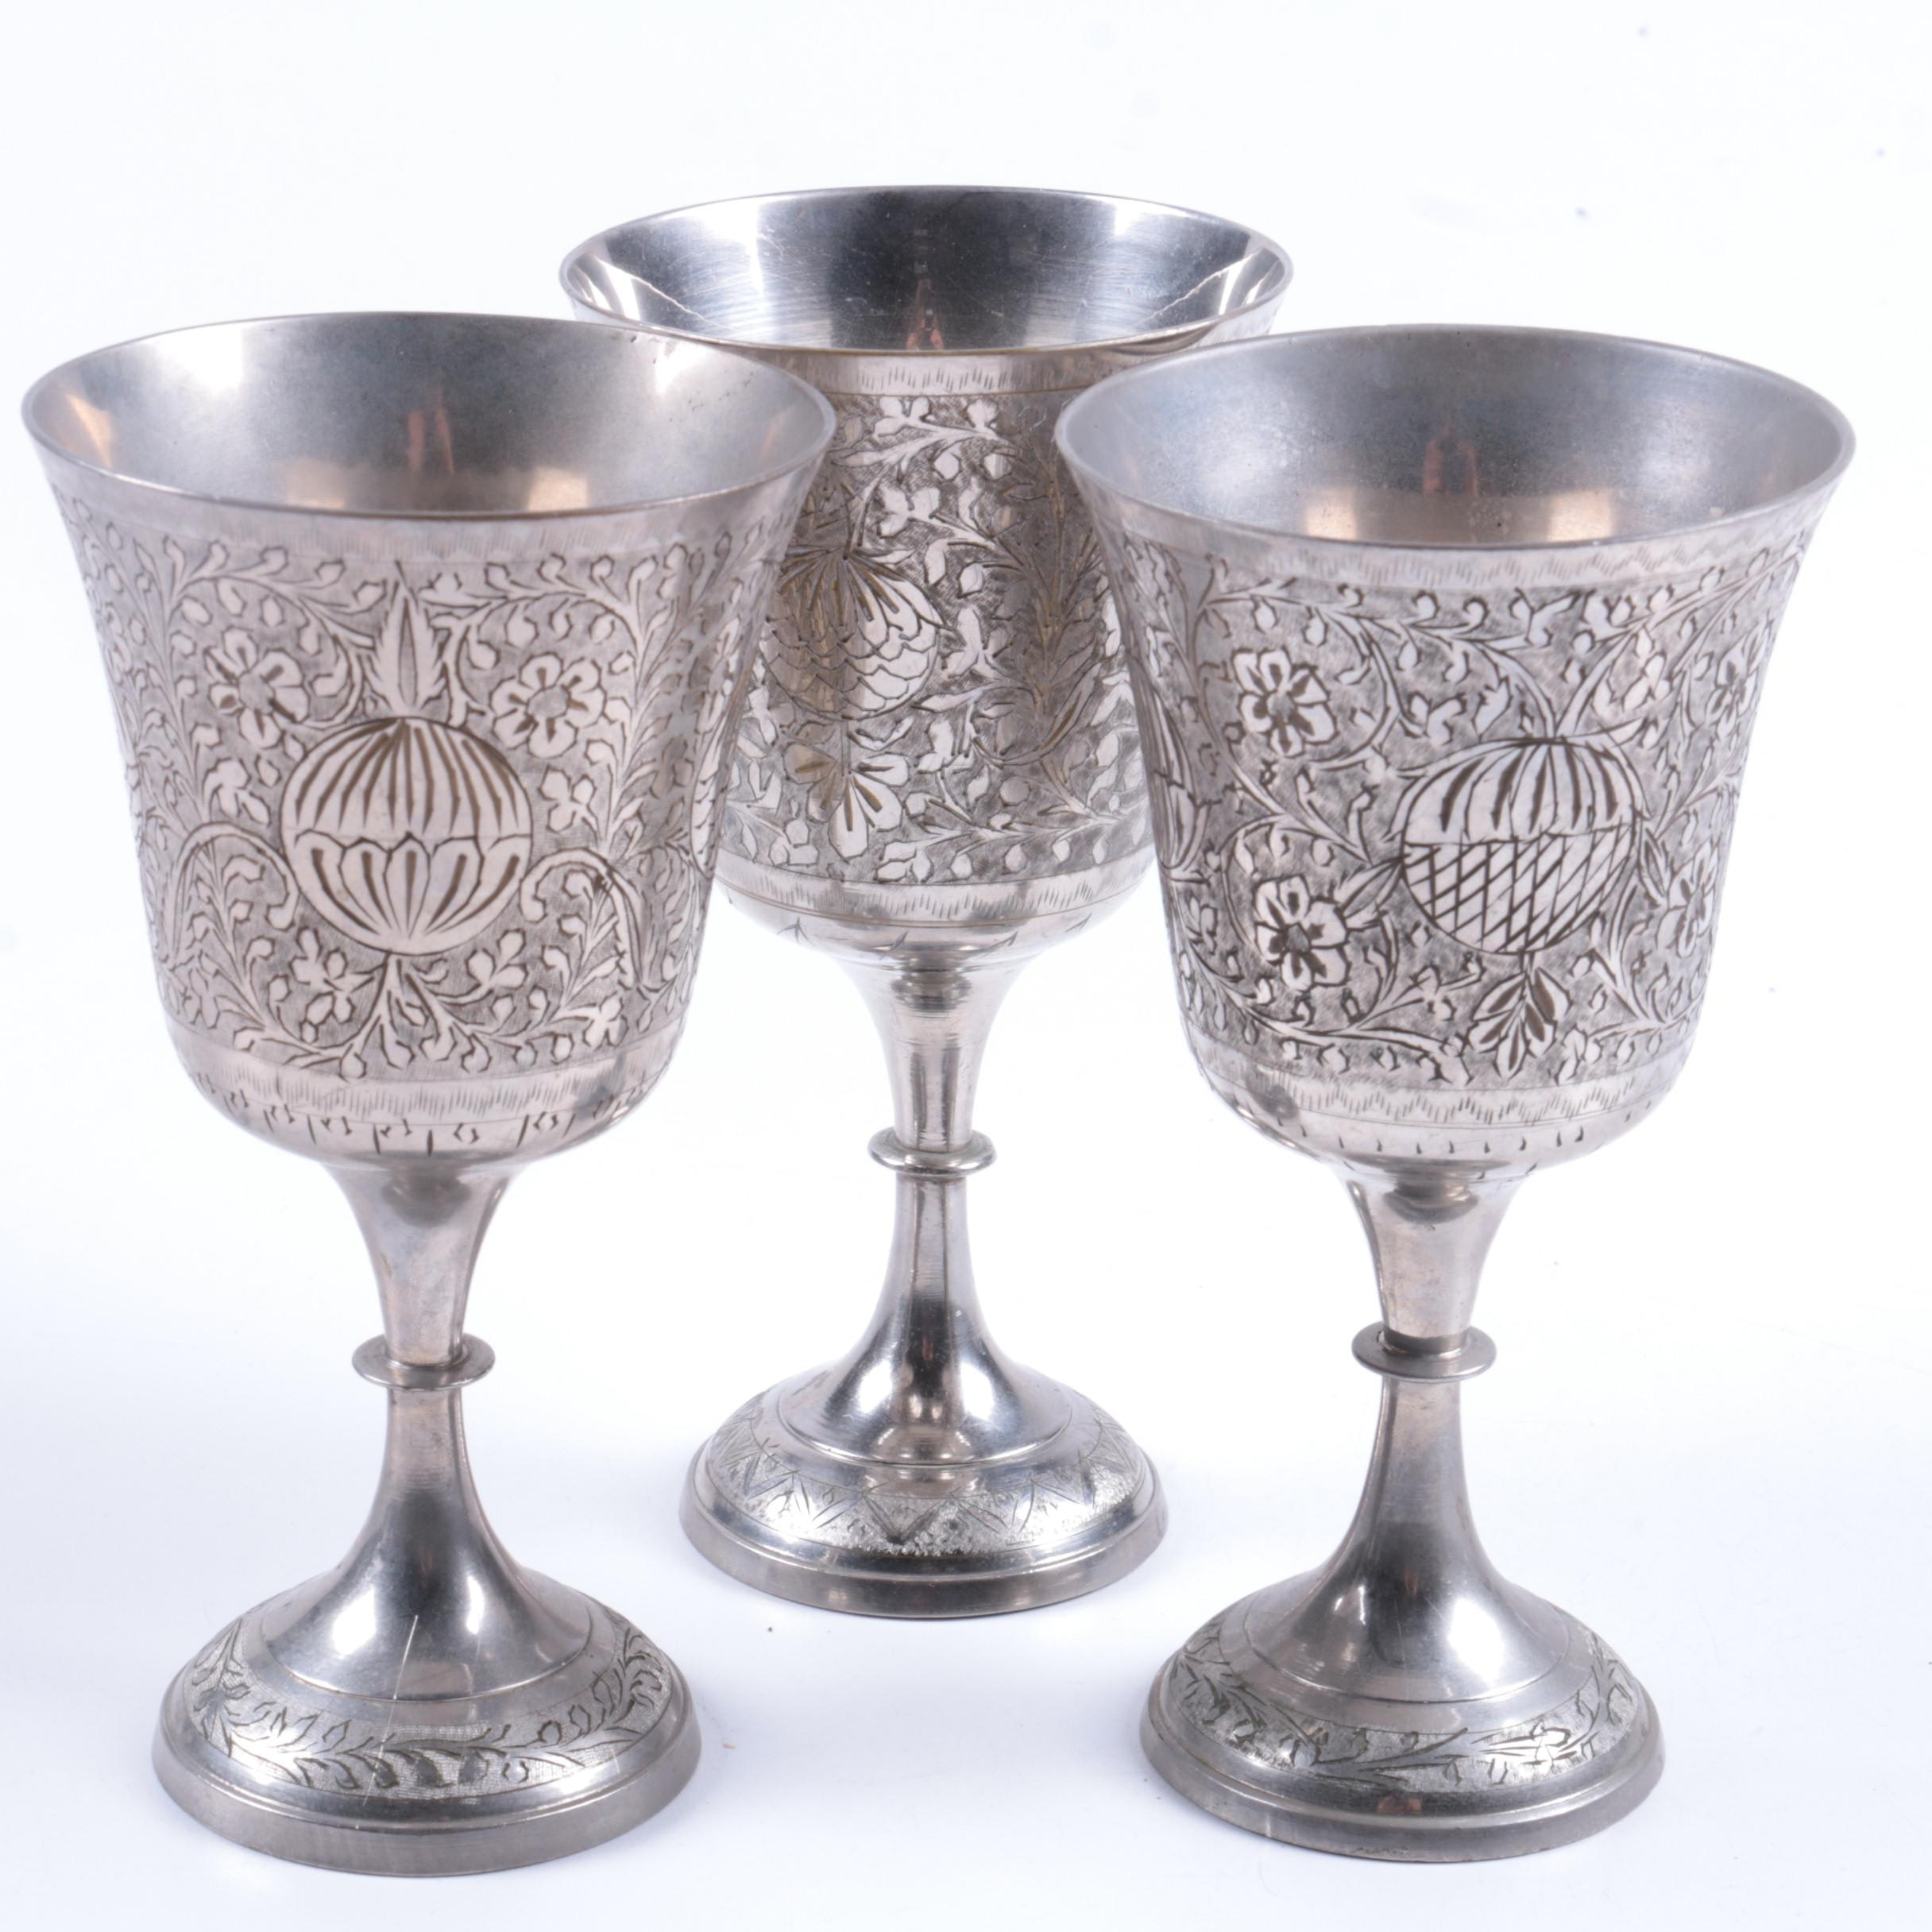 Z.Y. India Engraved Silver Tone Goblets